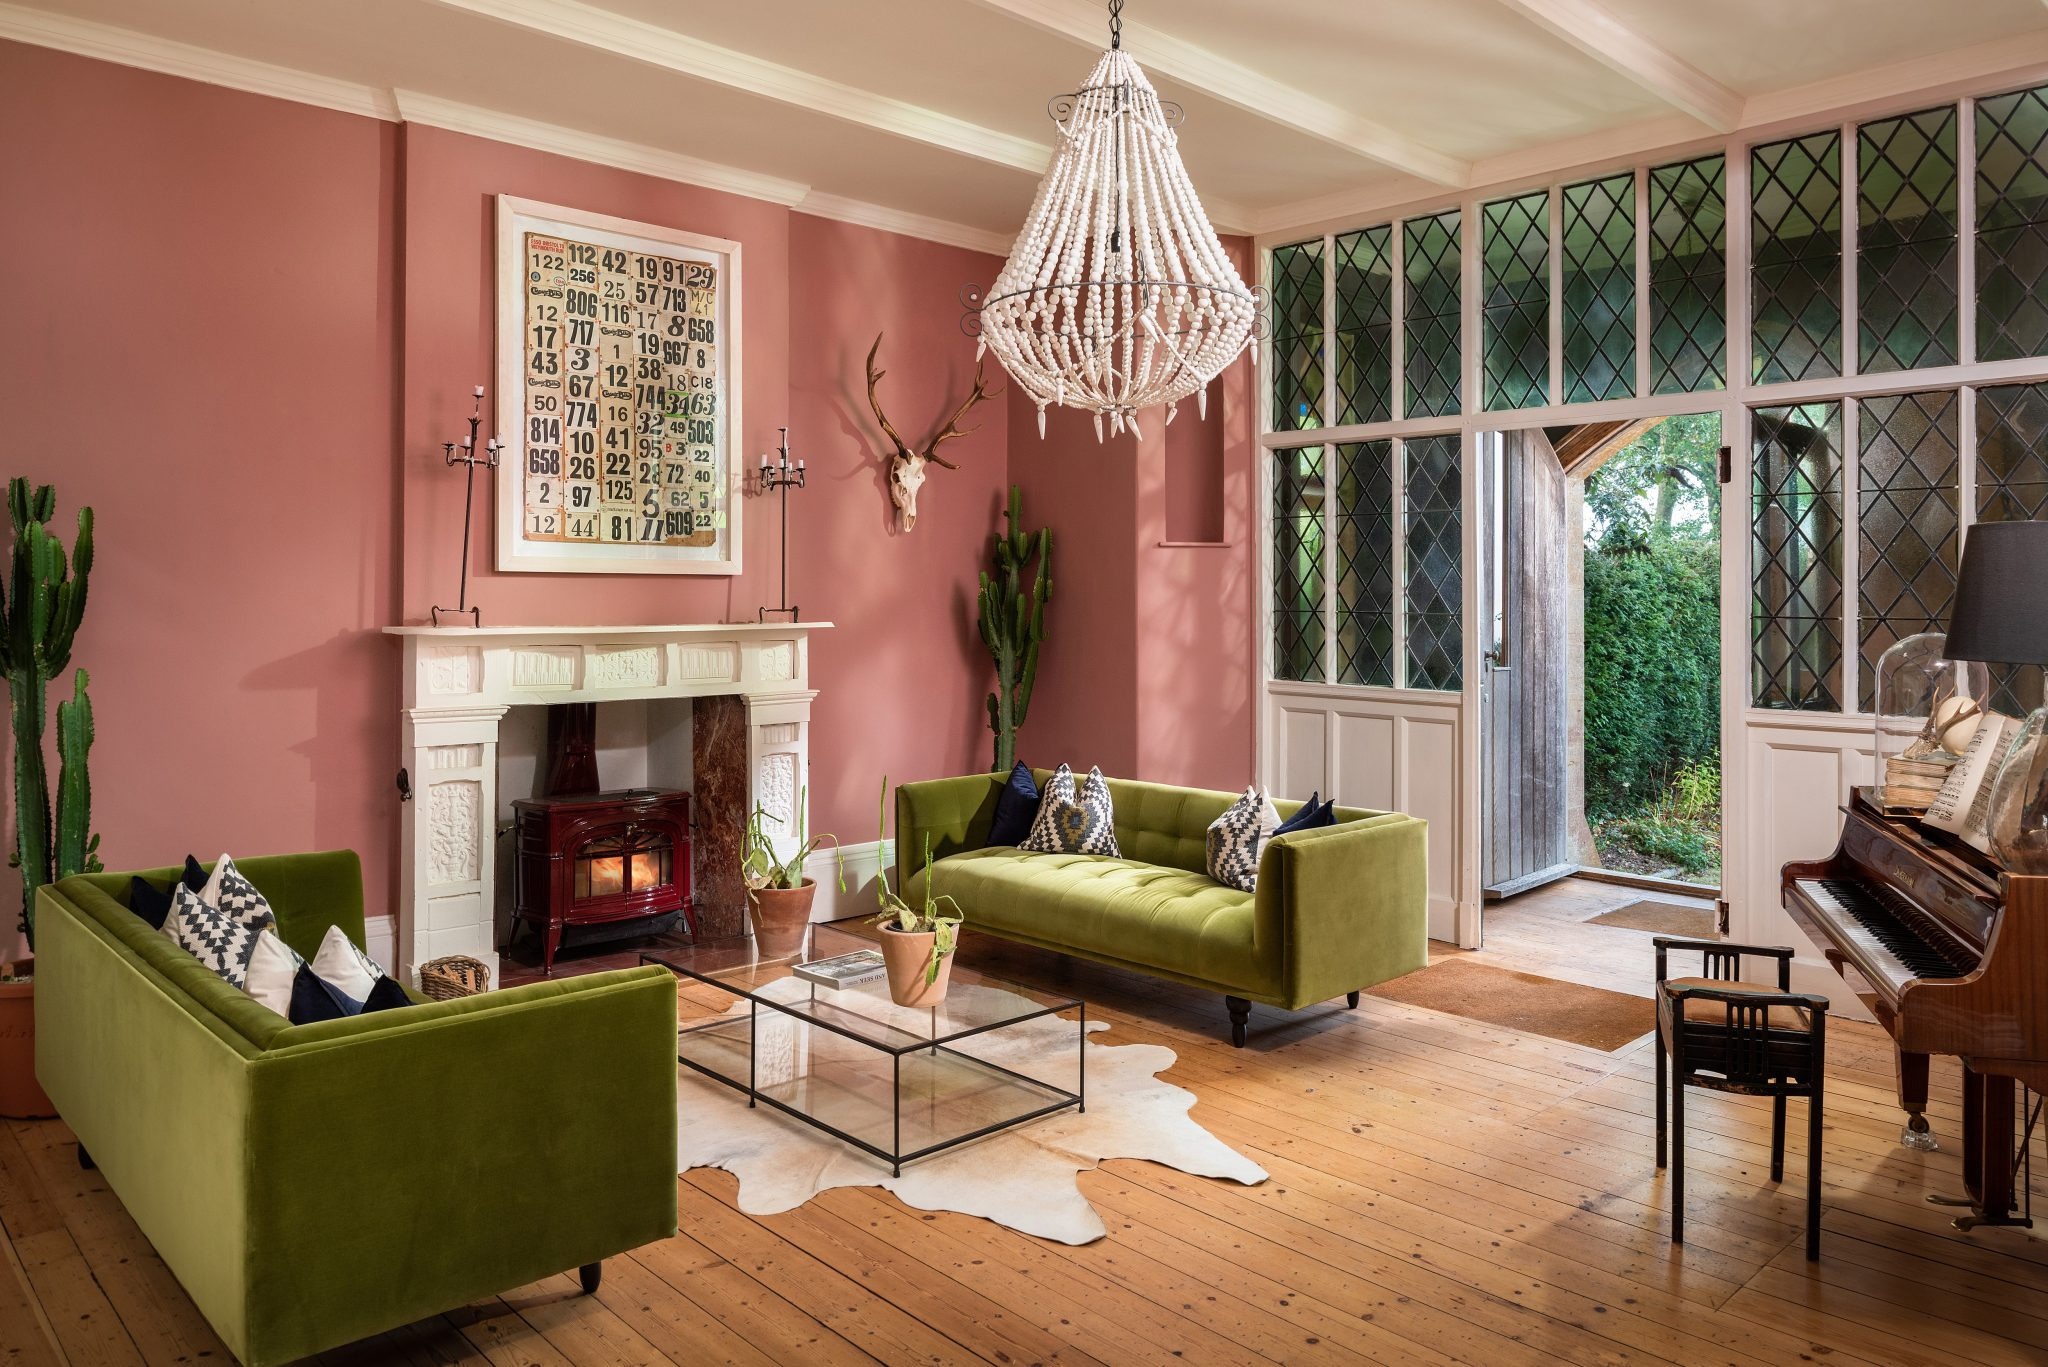 Pink wall living room with green sofas at Zingara holiday rental in Devon